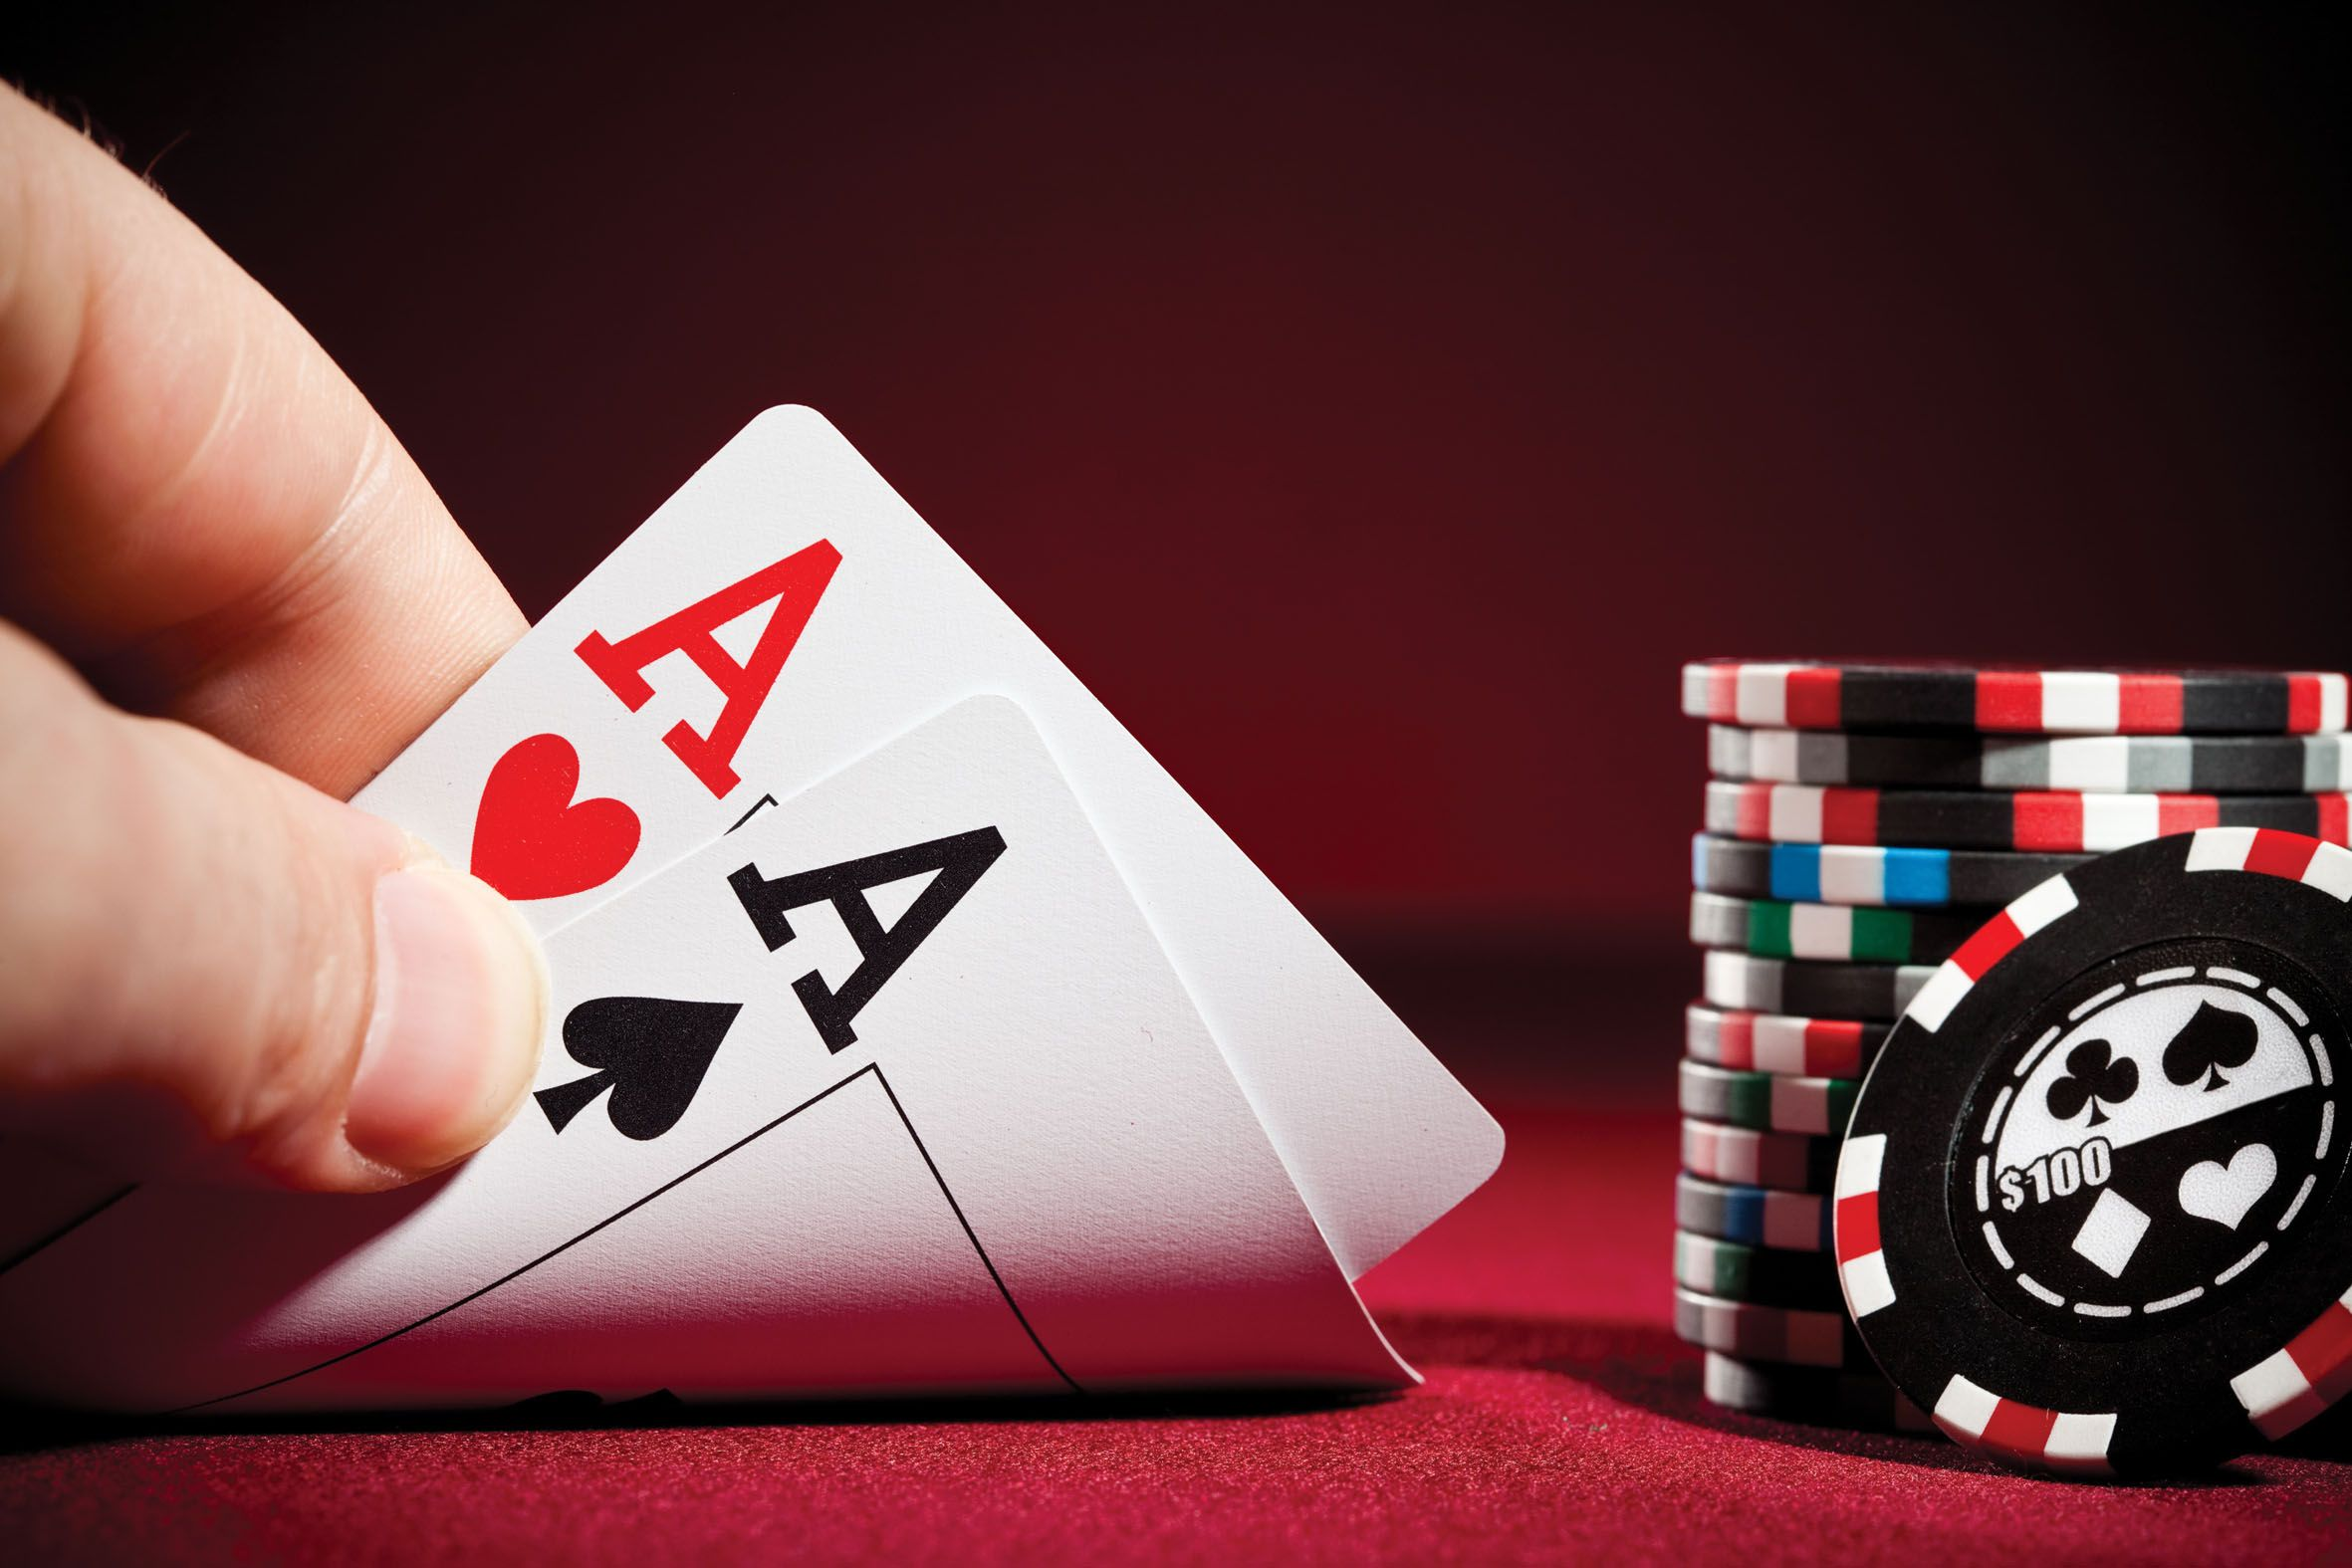 Did you know that there is a Casino Online called Nova88?